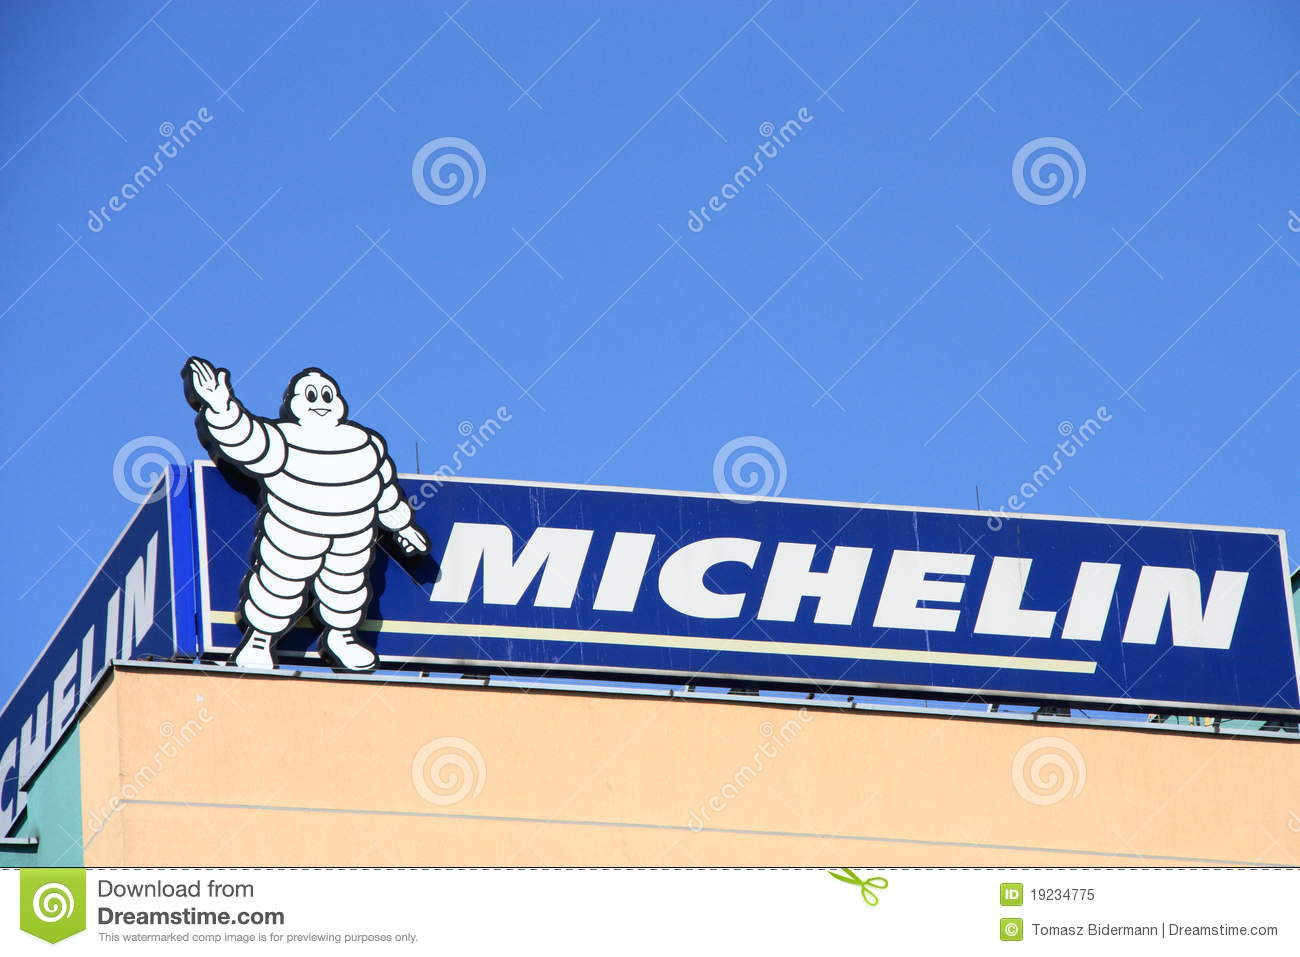 Michelin makes changes to U.S. employee retirement plan